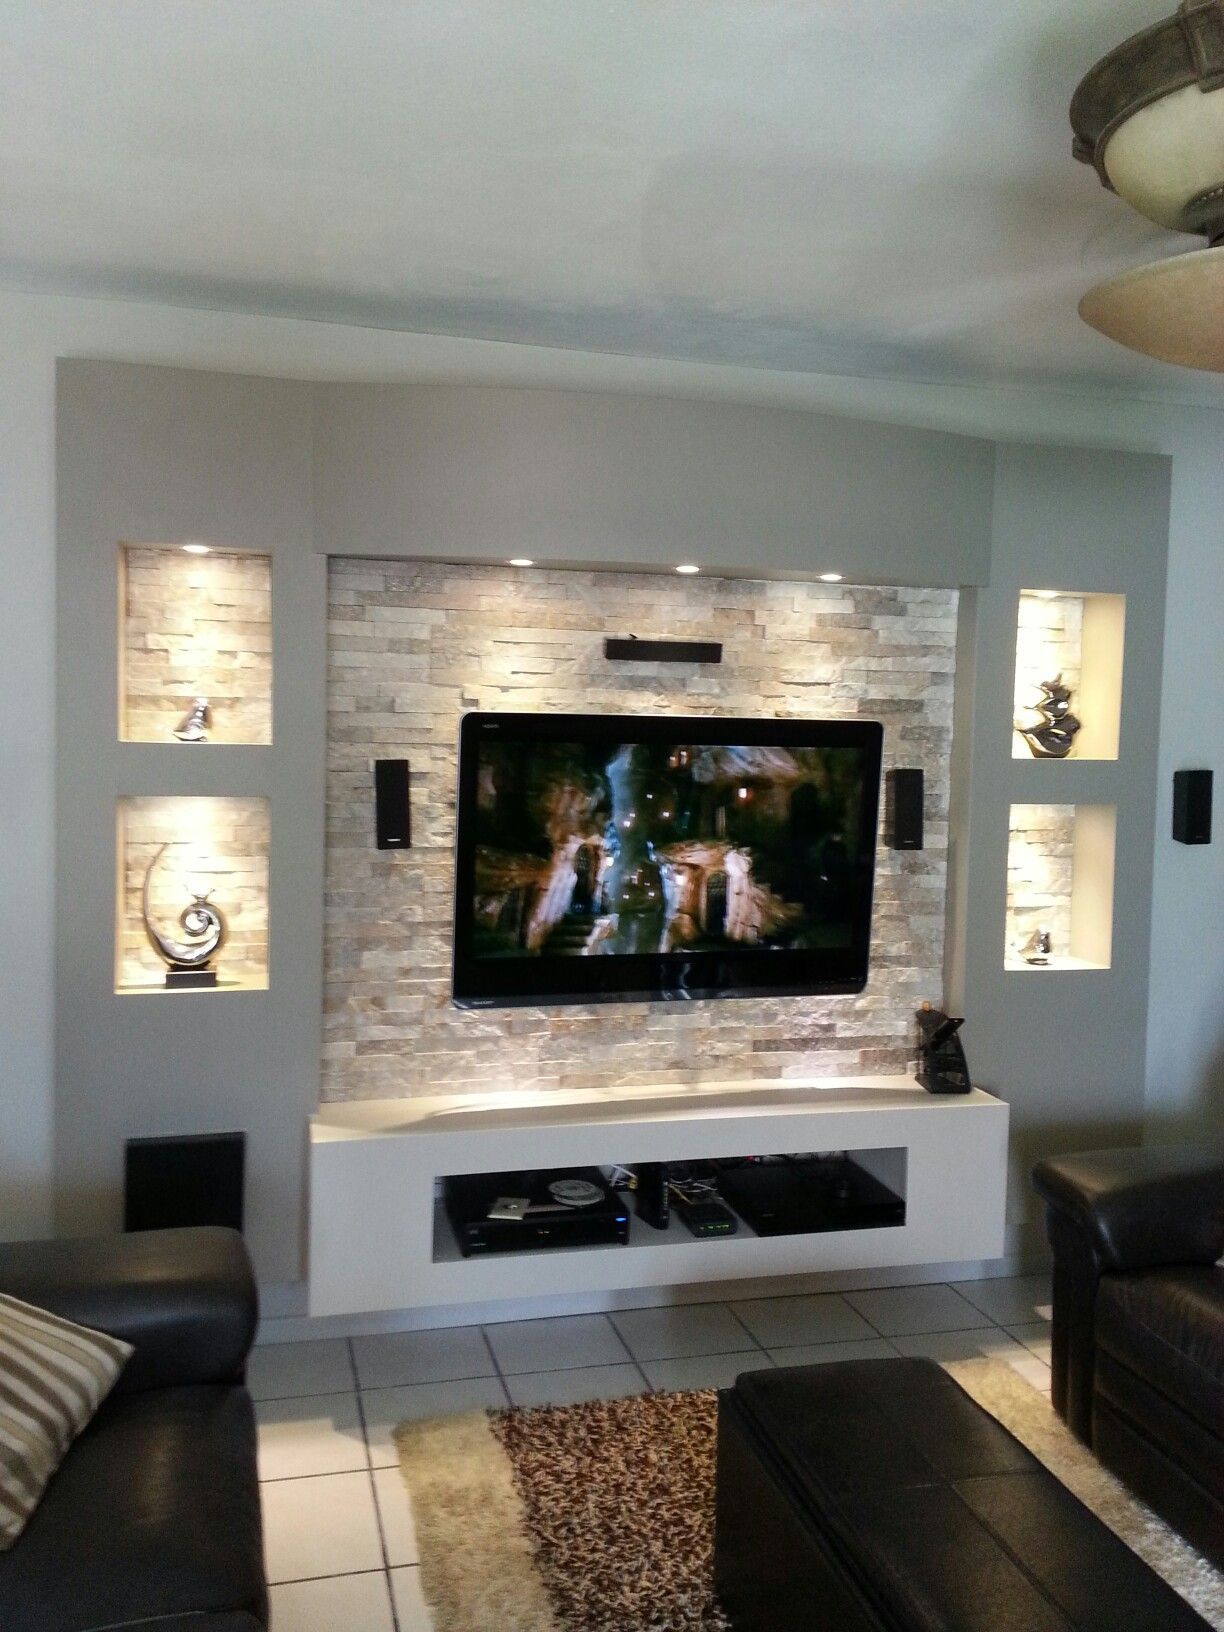 Modern Tv Unit Design Ideas Living Room Internal Home Design In 2020 Cheap Living Room Decor Cheap Living Rooms Living Room Tv Wall